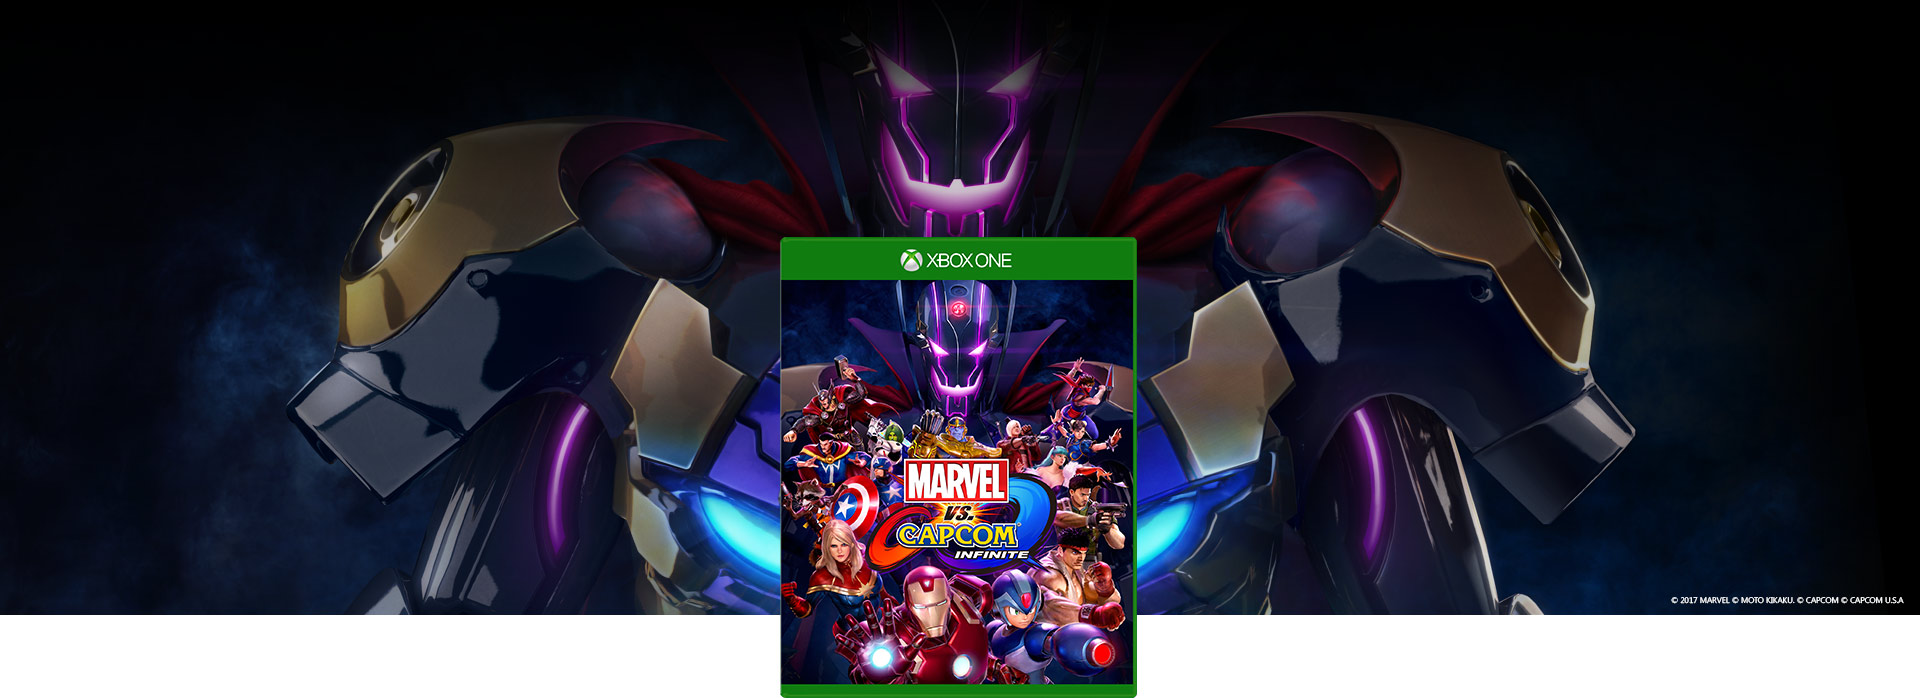 Marvel vs Capcom Infinite boxshot